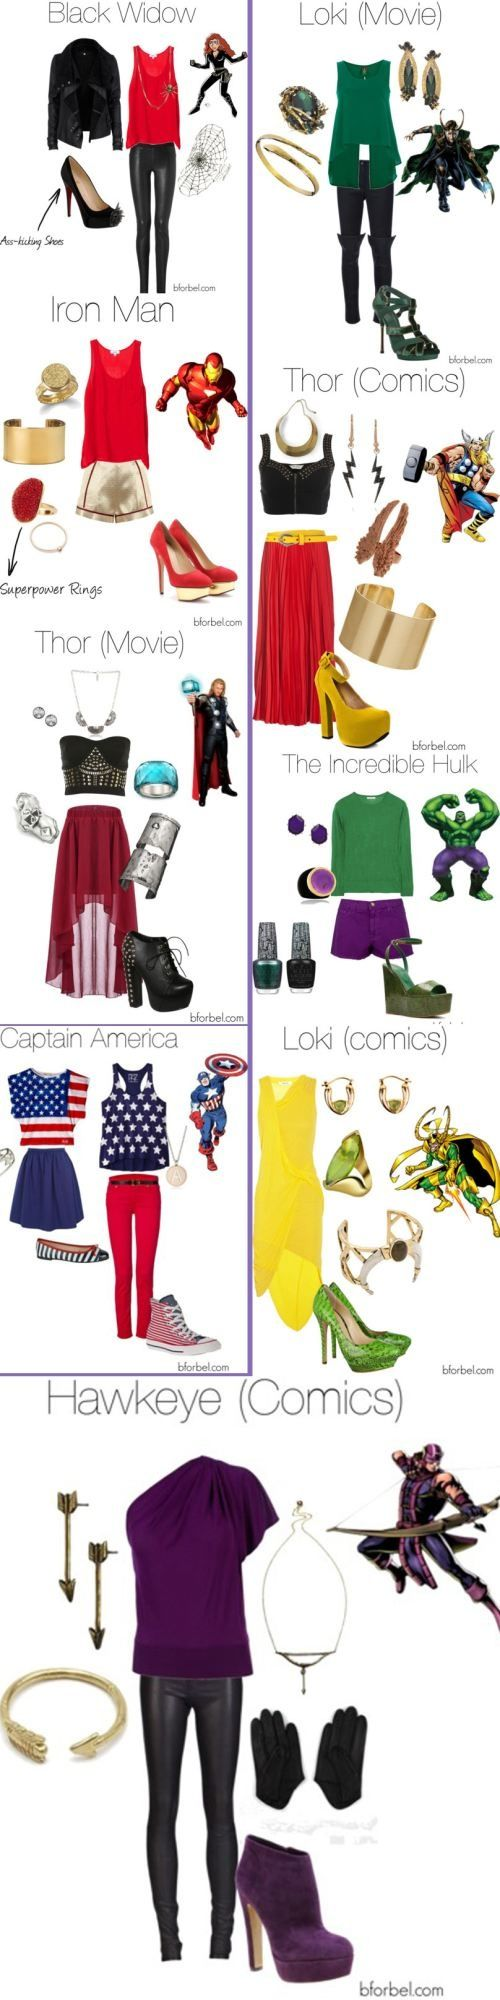 Avengers outfits. I LOVE the Thor (movie) outfit, Black Widow outfit and Loki (movie) outfit.